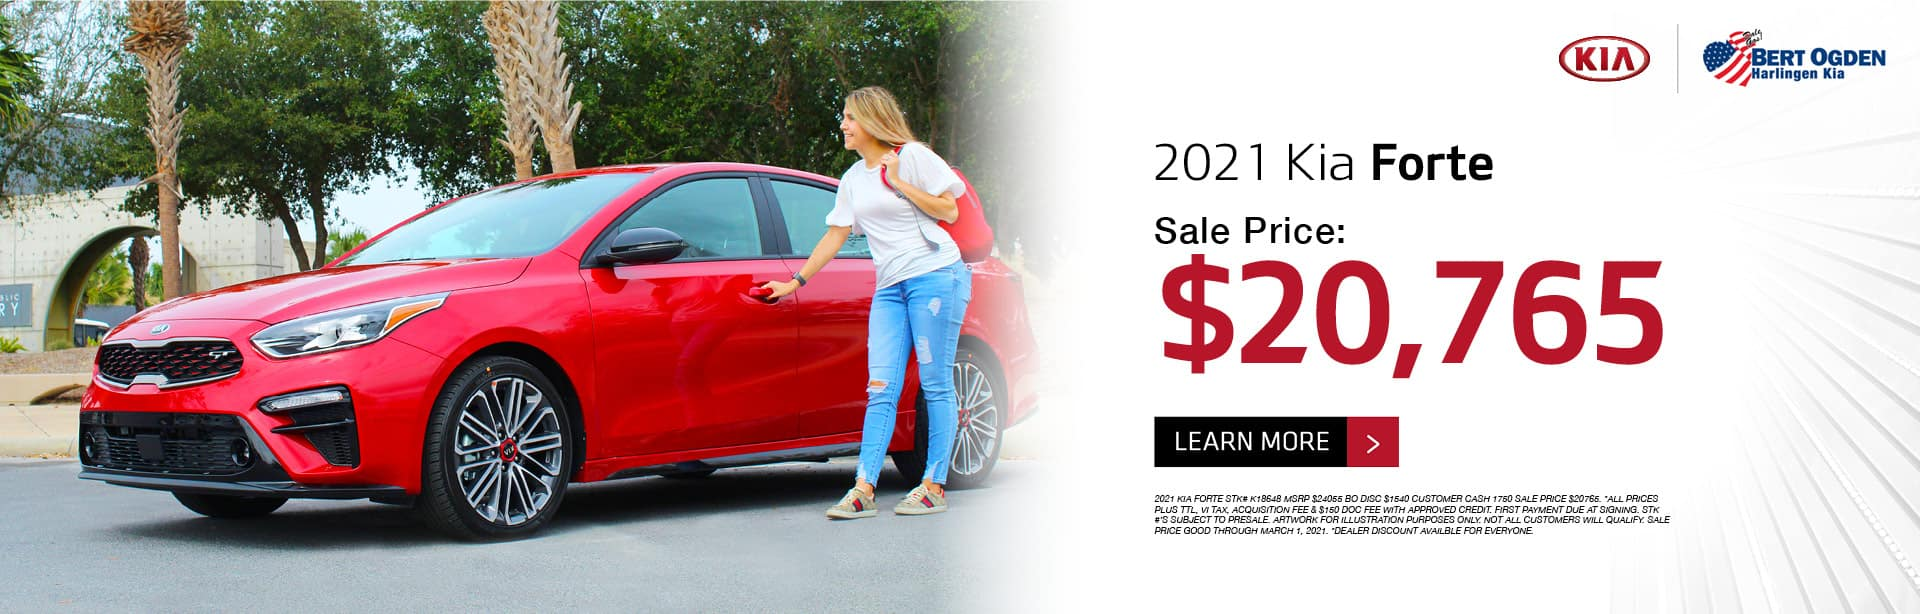 2021 Kia Forte February 2021 Offer - Bert Ogden Harlingen Kia in Harlingen, Texas